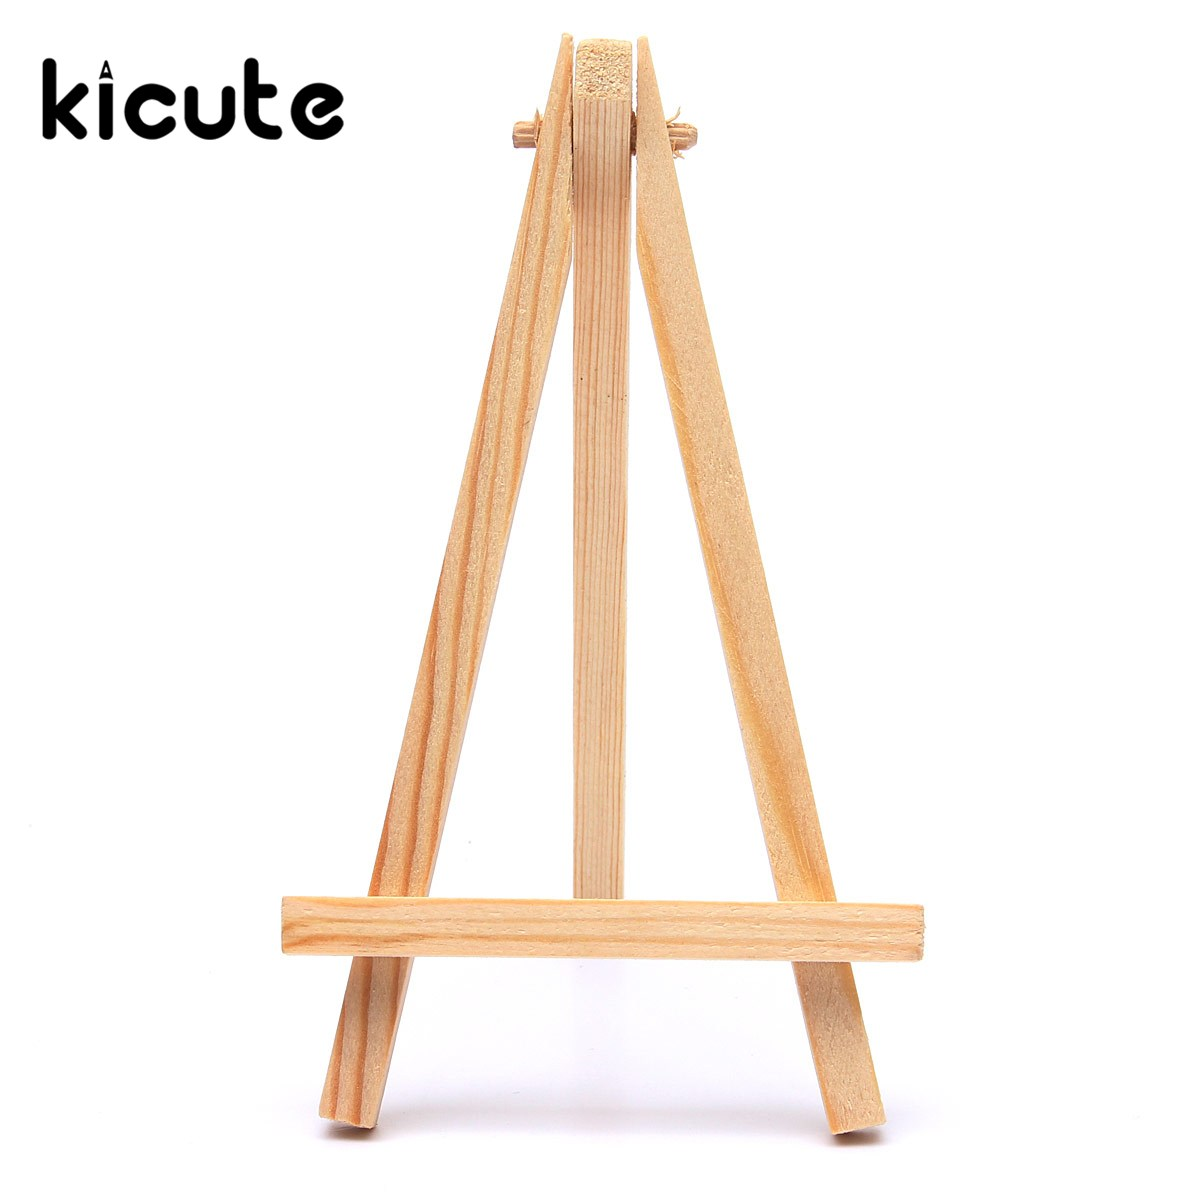 Kicute Portable Wood Artist Easel Wedding Table Number Place Name Card Photos Stand Display Holder DIY Party Table Tools